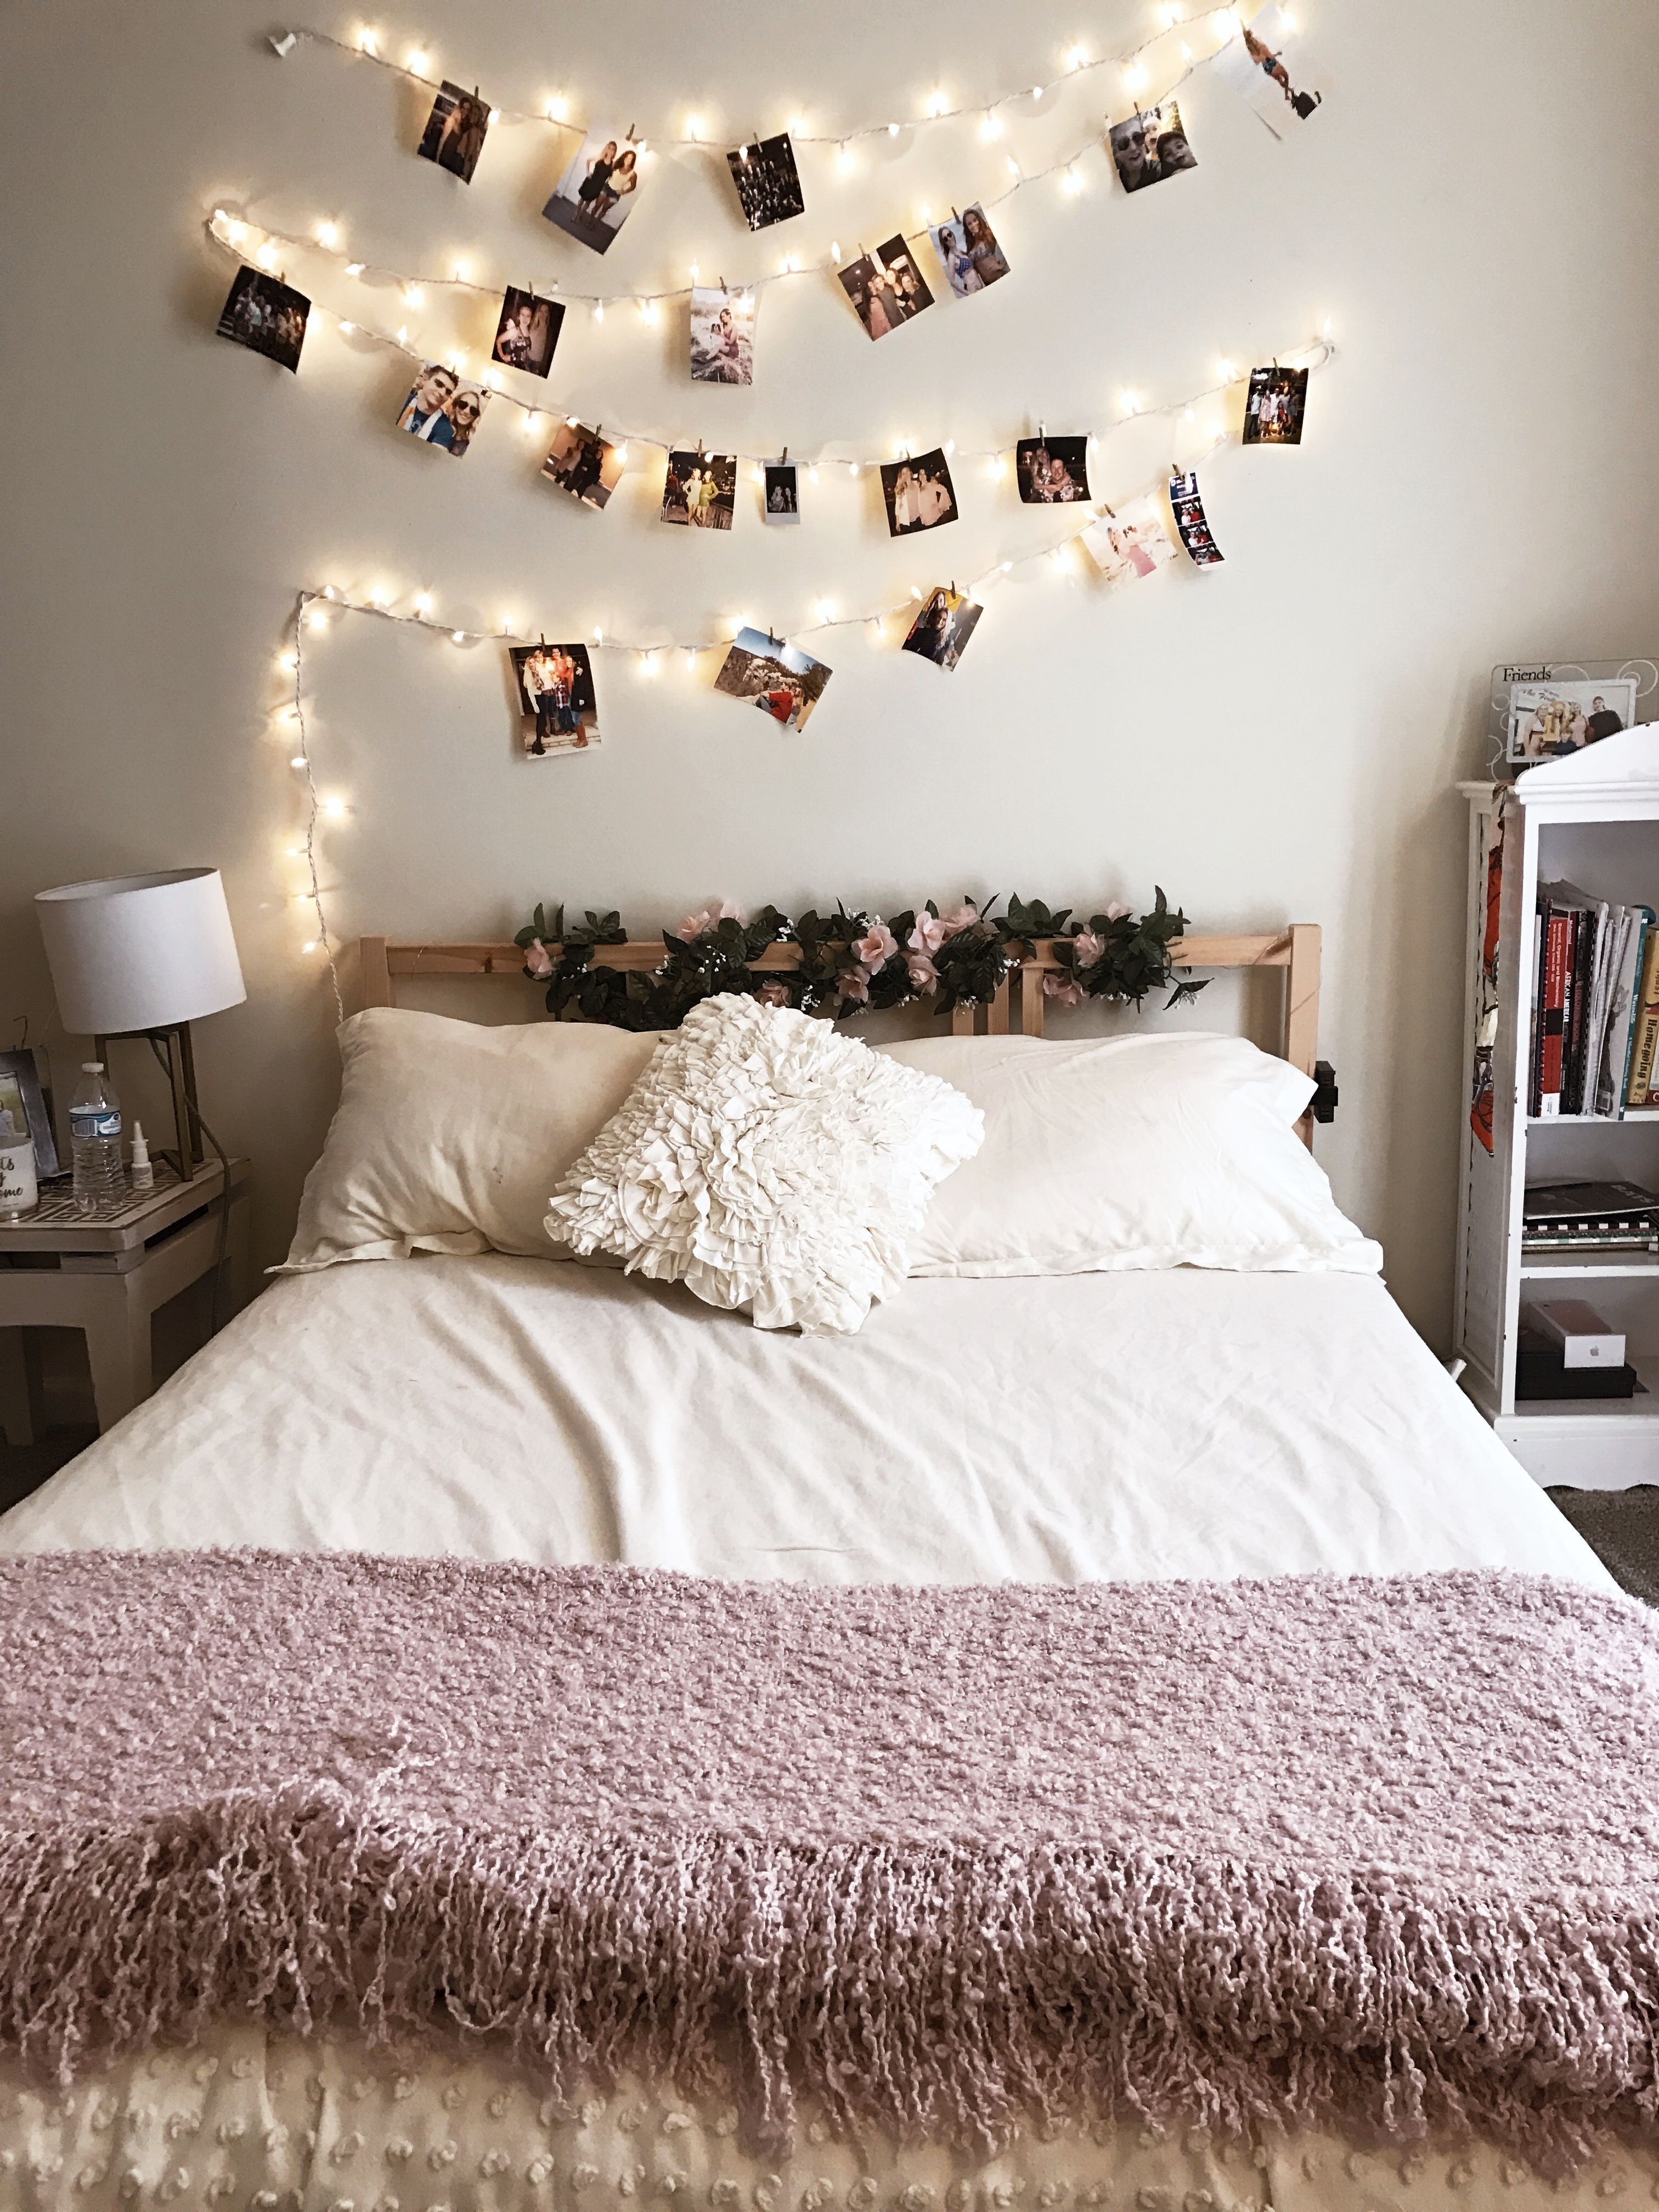 Cute Lights And Bedroom Bedding Urban Outfitters | Urban ...